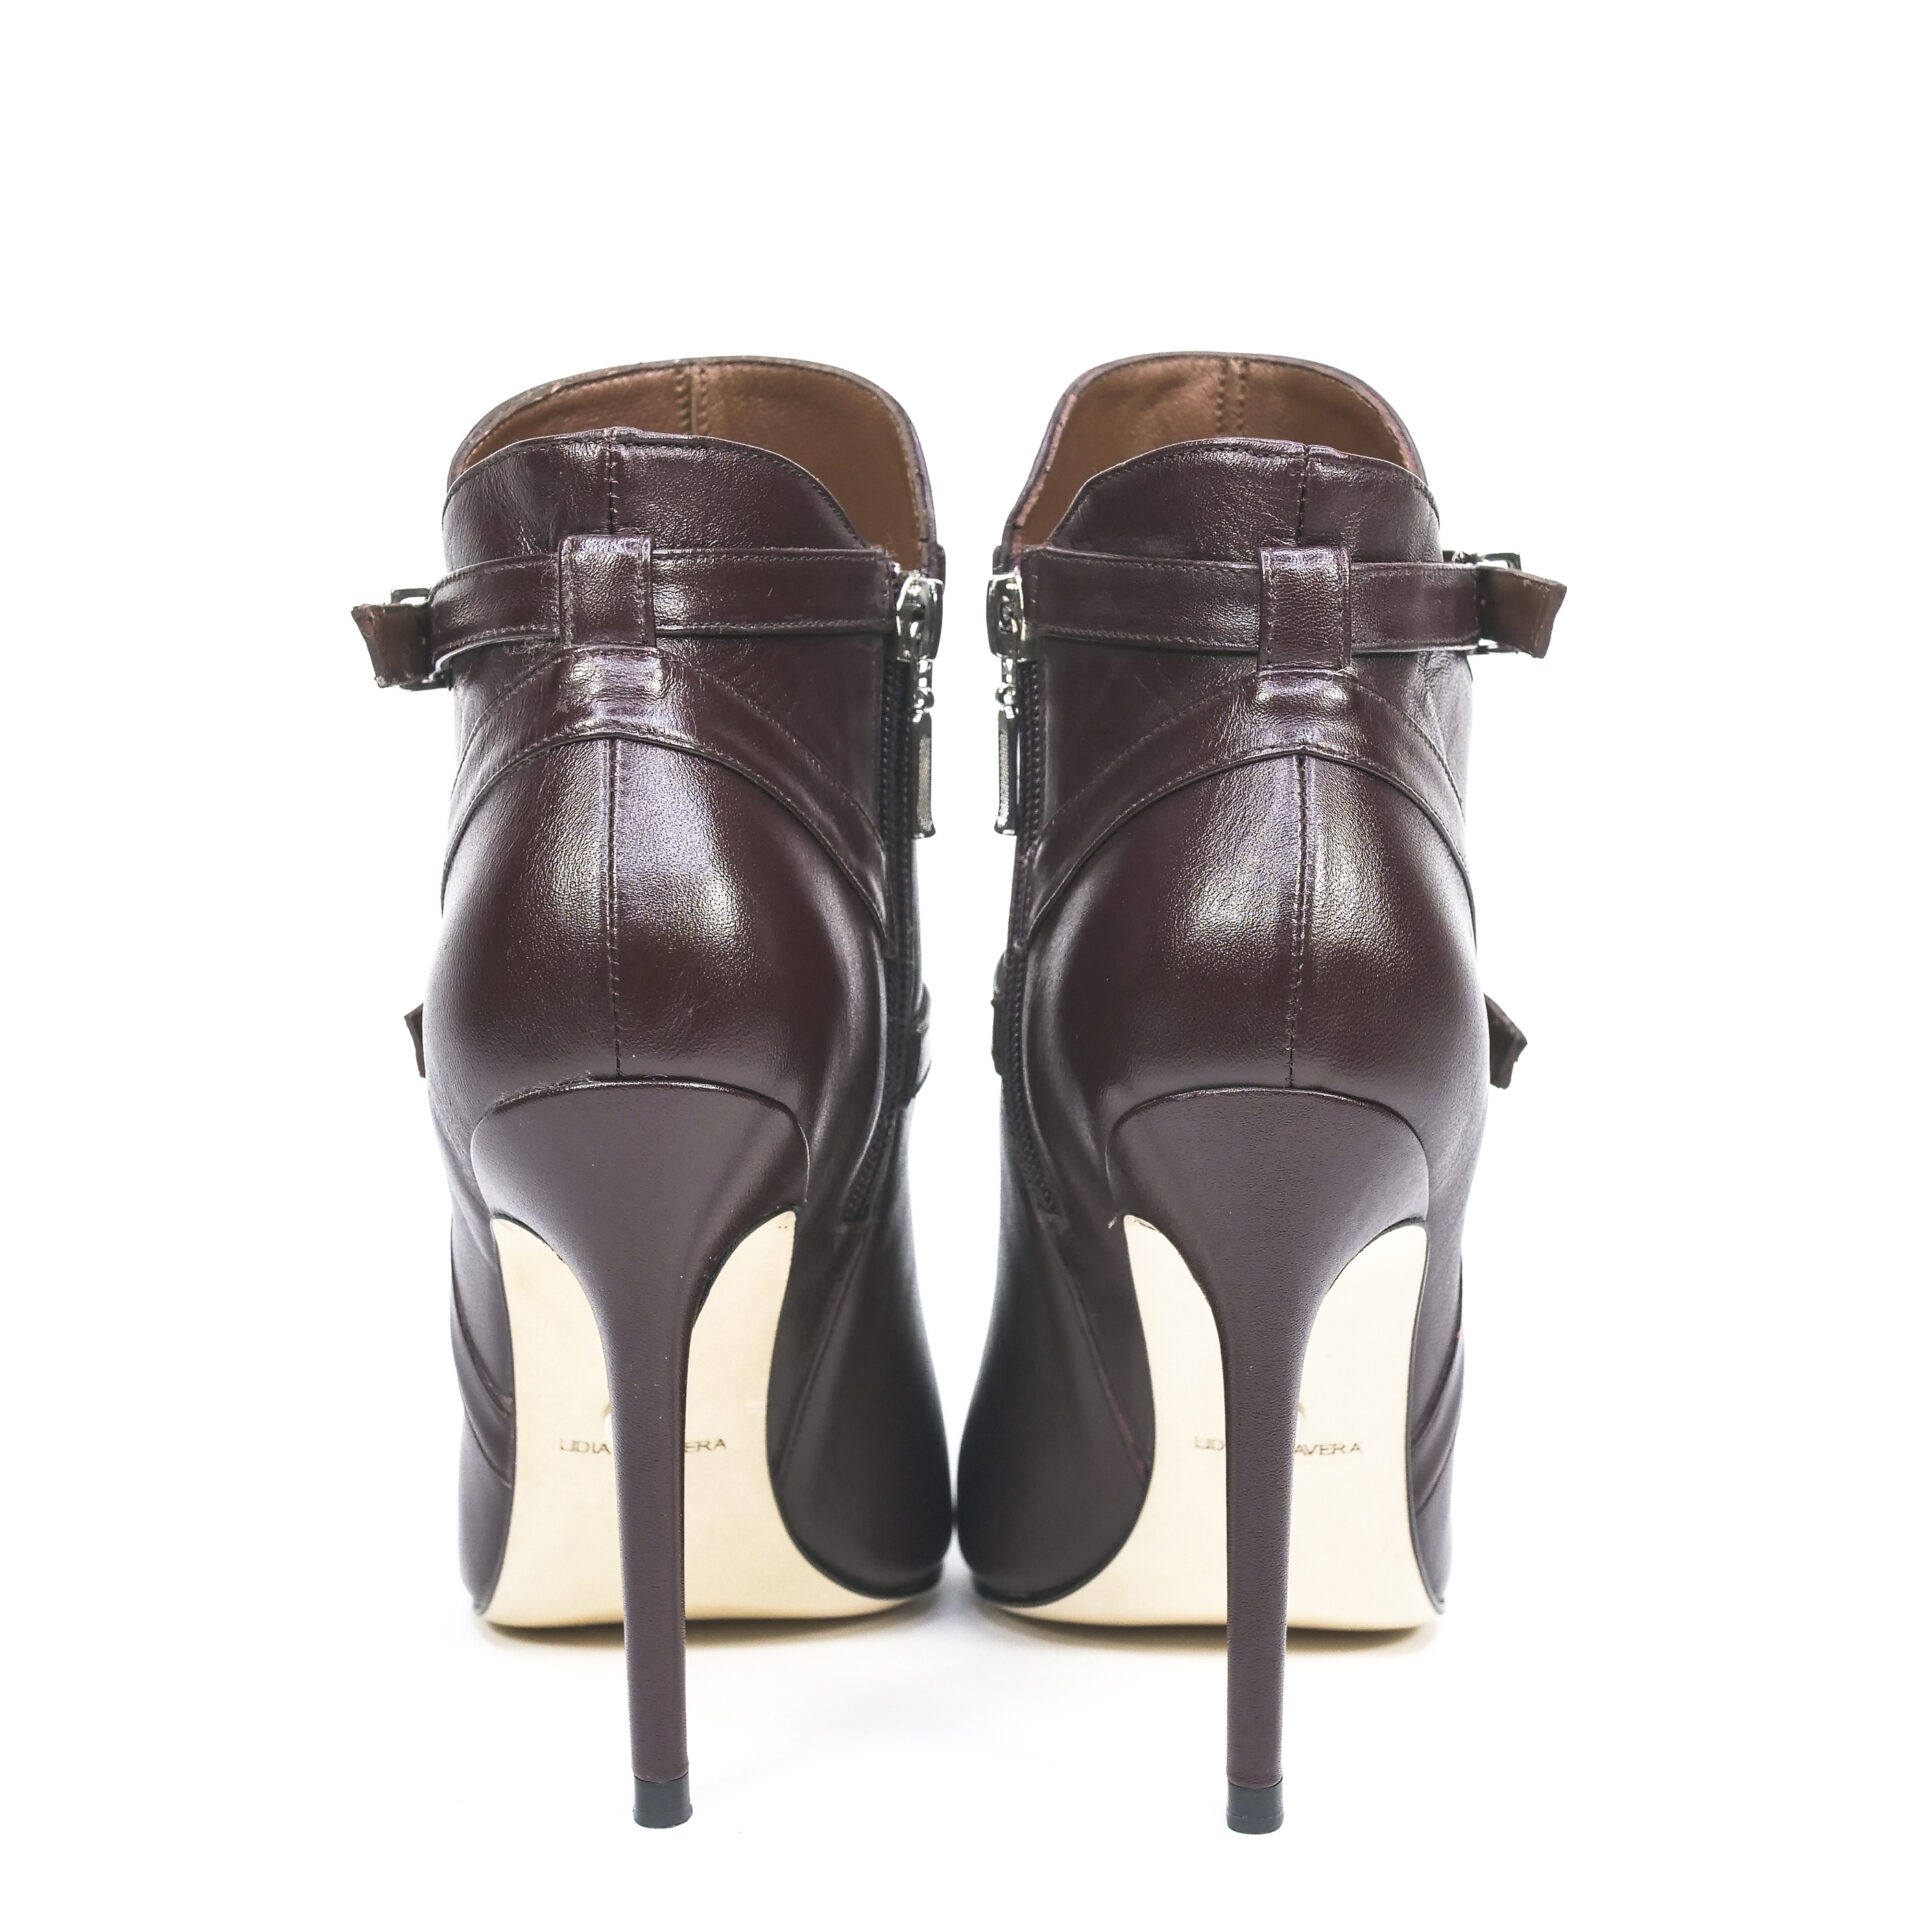 pointed-toe booties with buckles